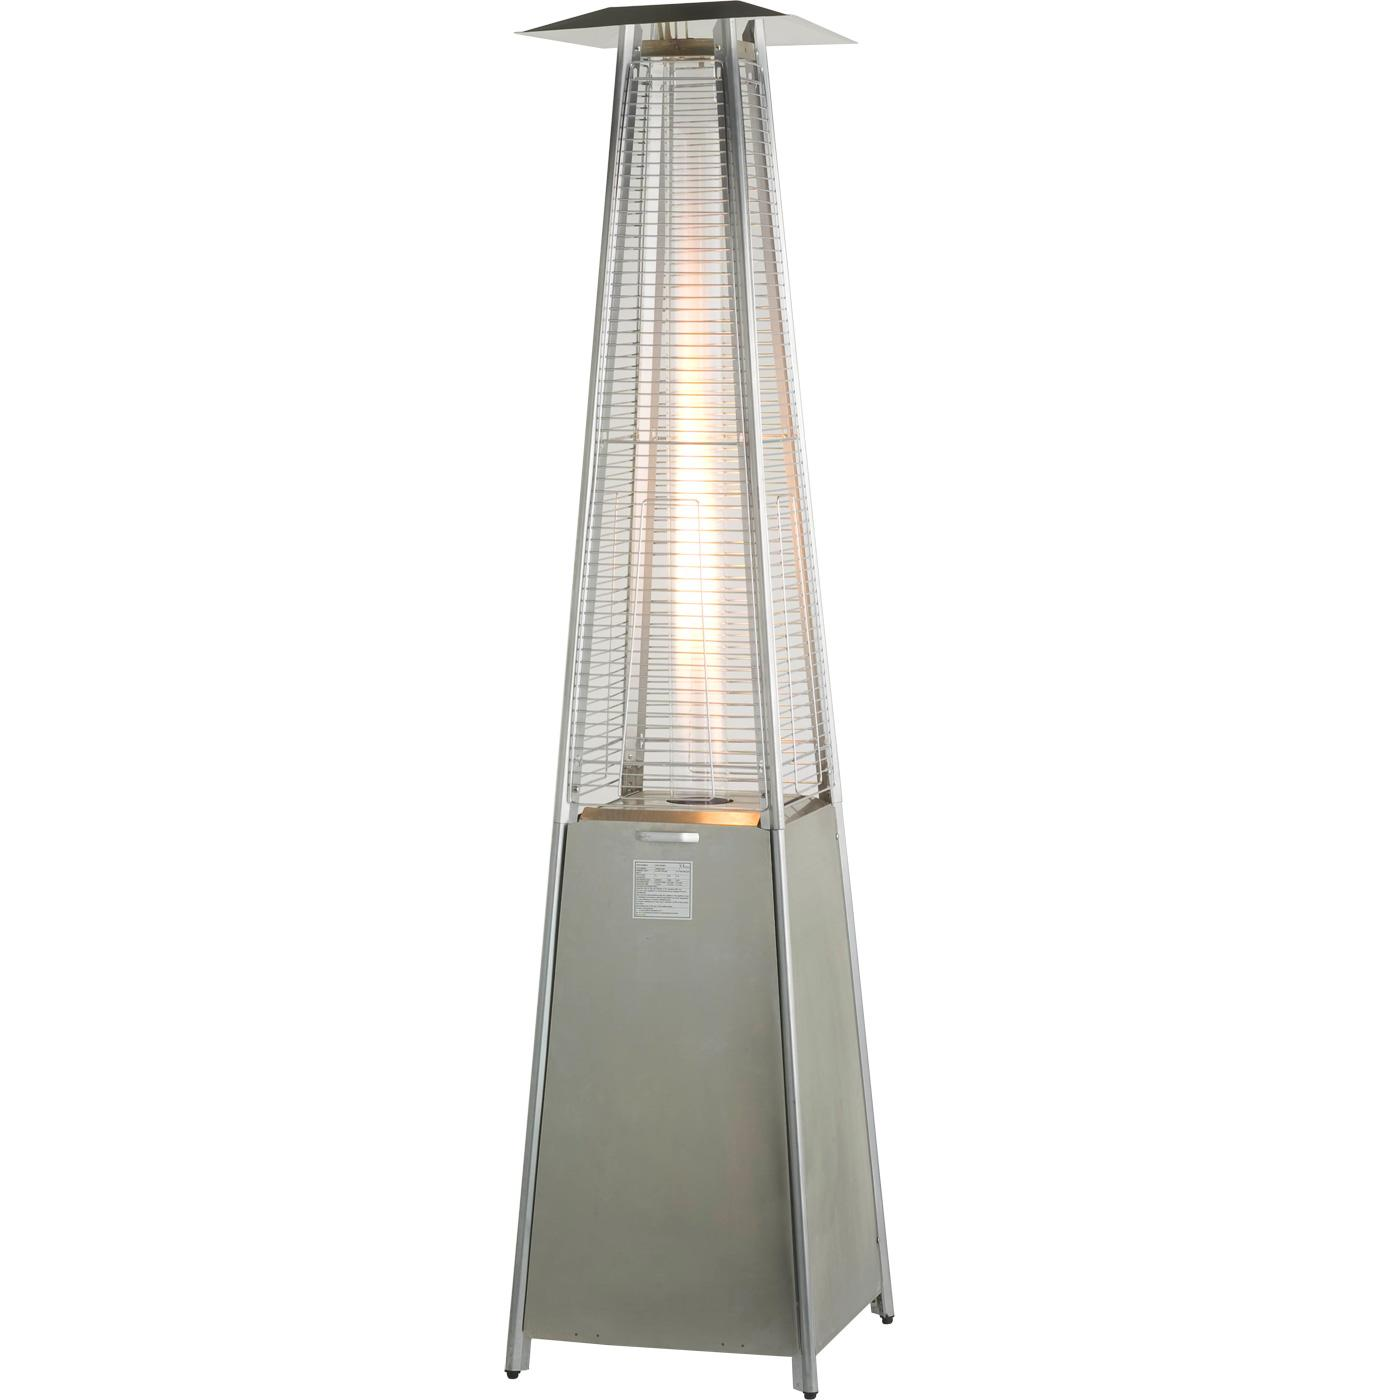 #594F41 Athena Stainless Steel Flame Gas Patio Heater Heat Outdoors Brand New 5731 Outdoor Gas Furnace images with 1400x1400 px on helpvideos.info - Air Conditioners, Air Coolers and more